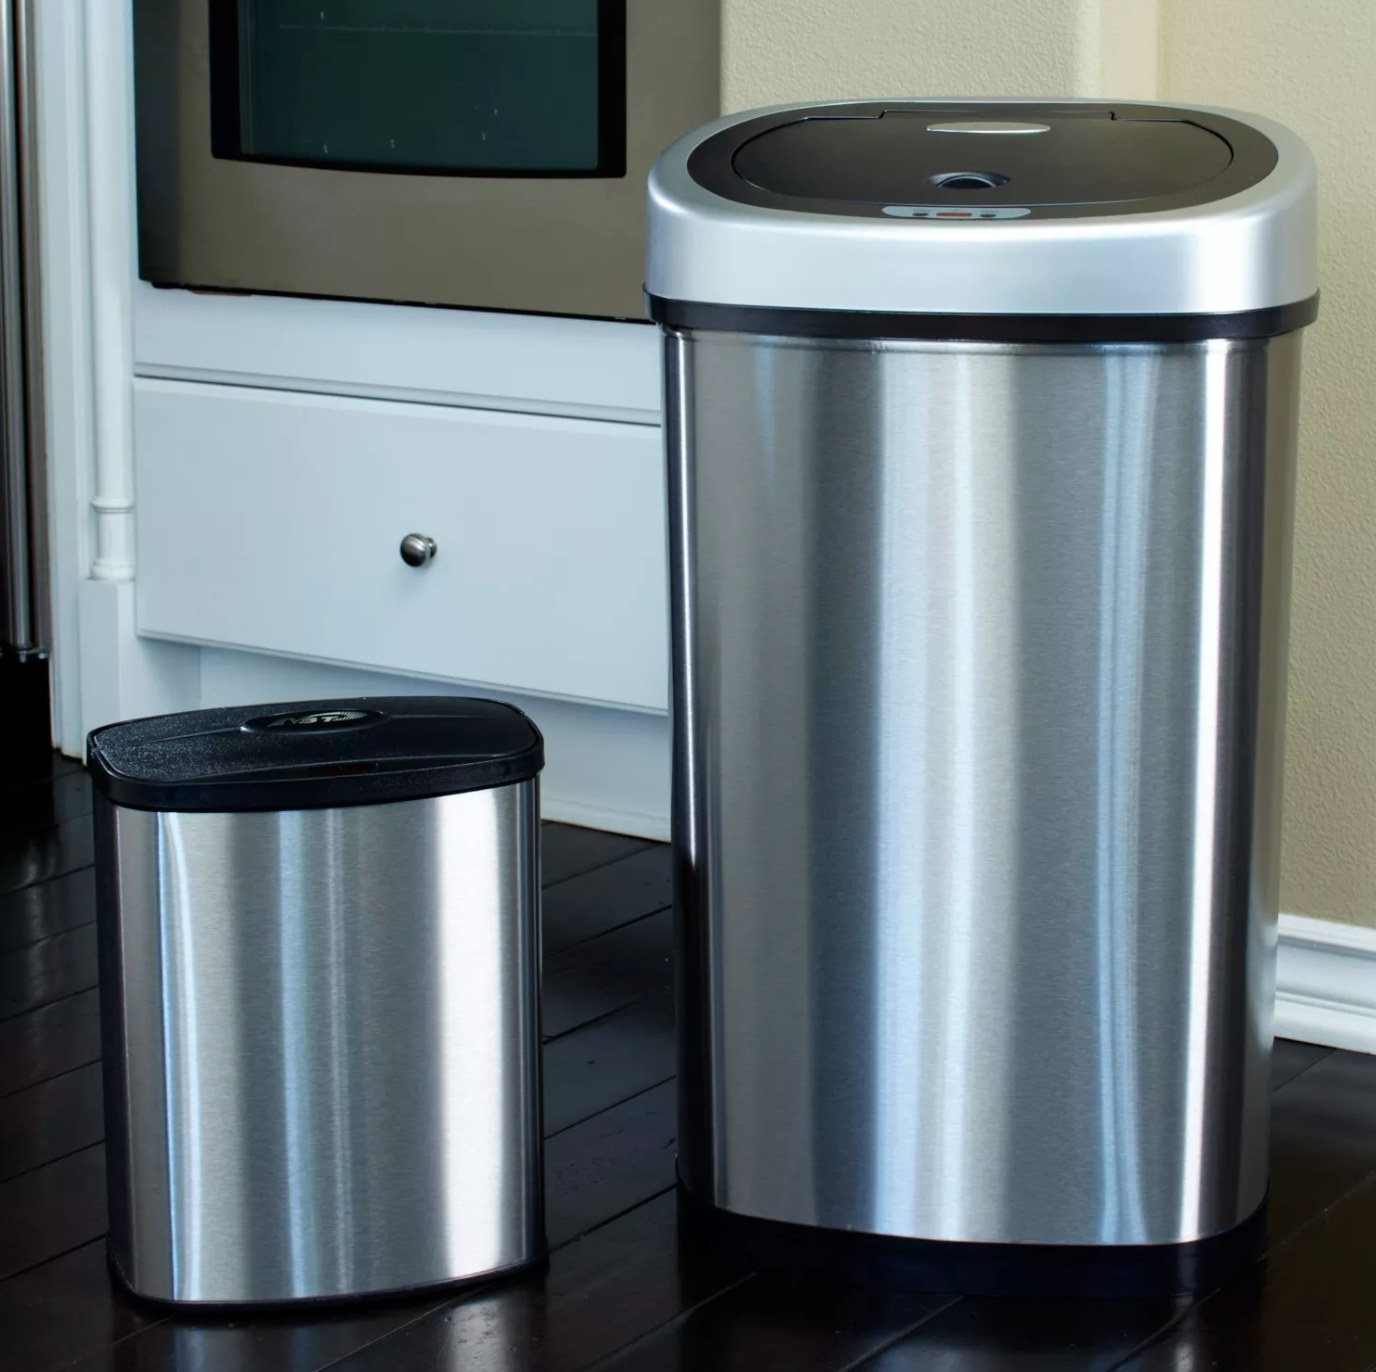 The stainless steel sensor trash can